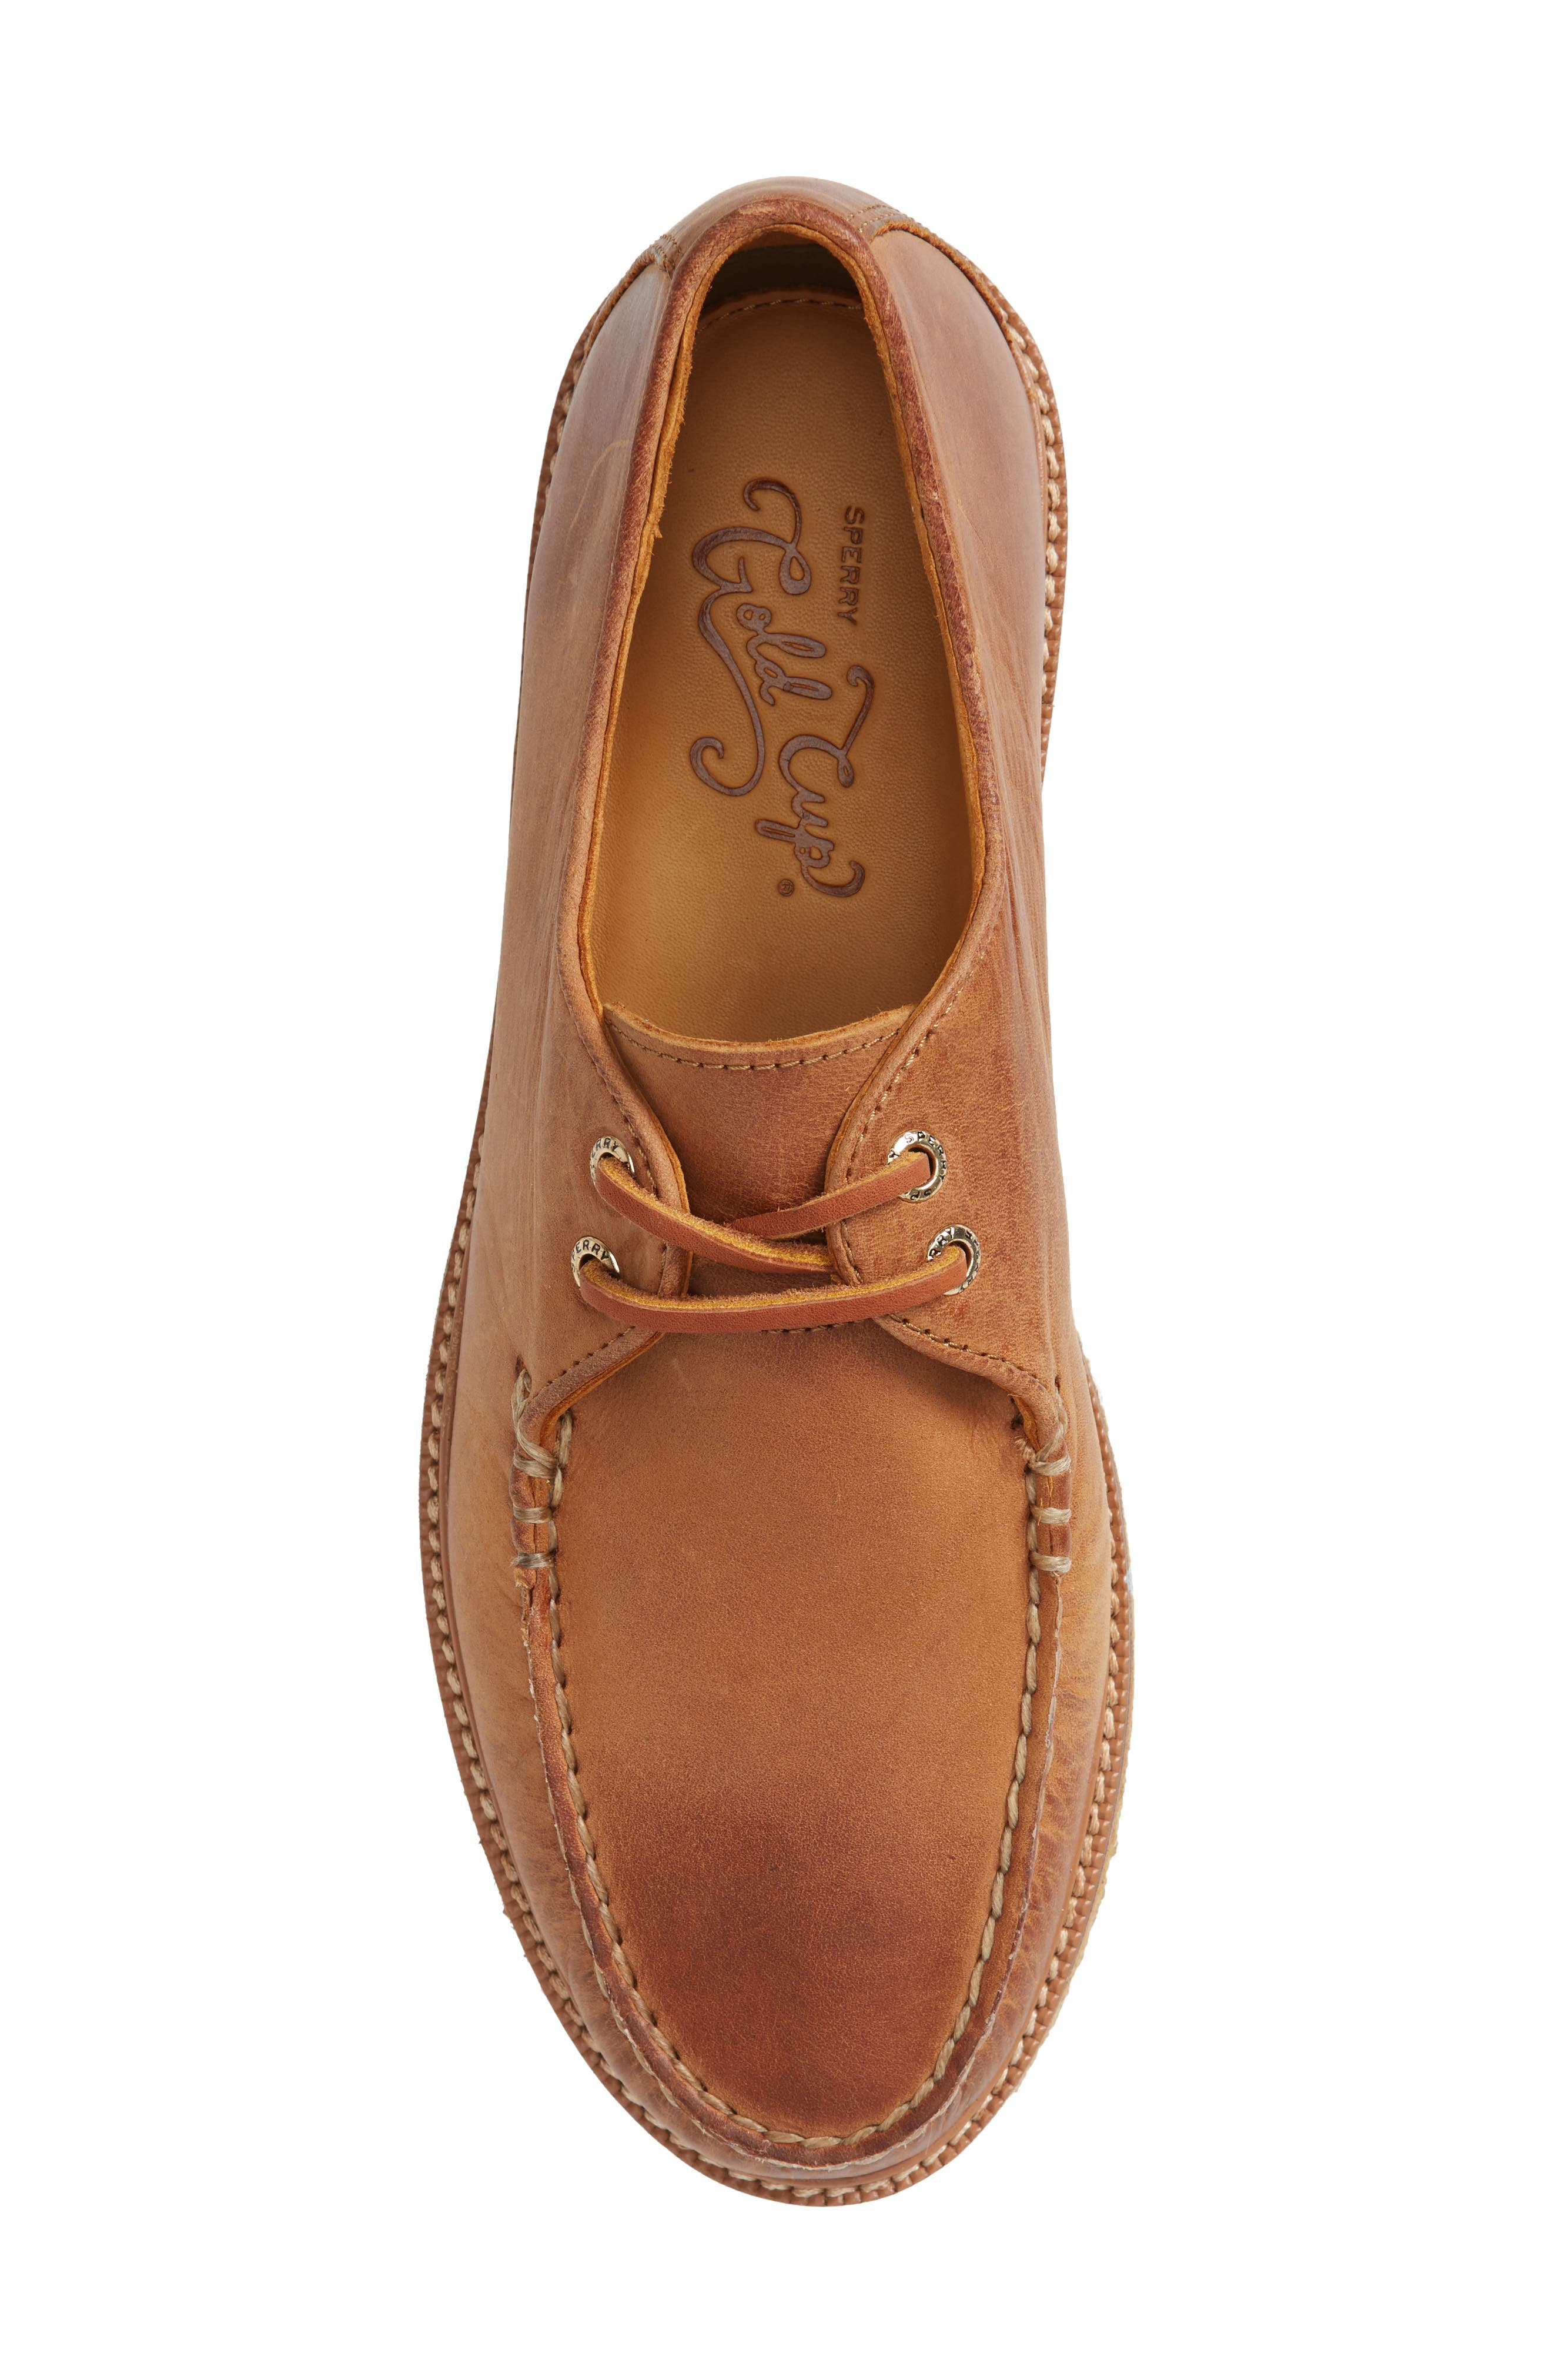 Gold Cup Captain's Crepe Sole Oxford,                             Alternate thumbnail 5, color,                             Tan Leather